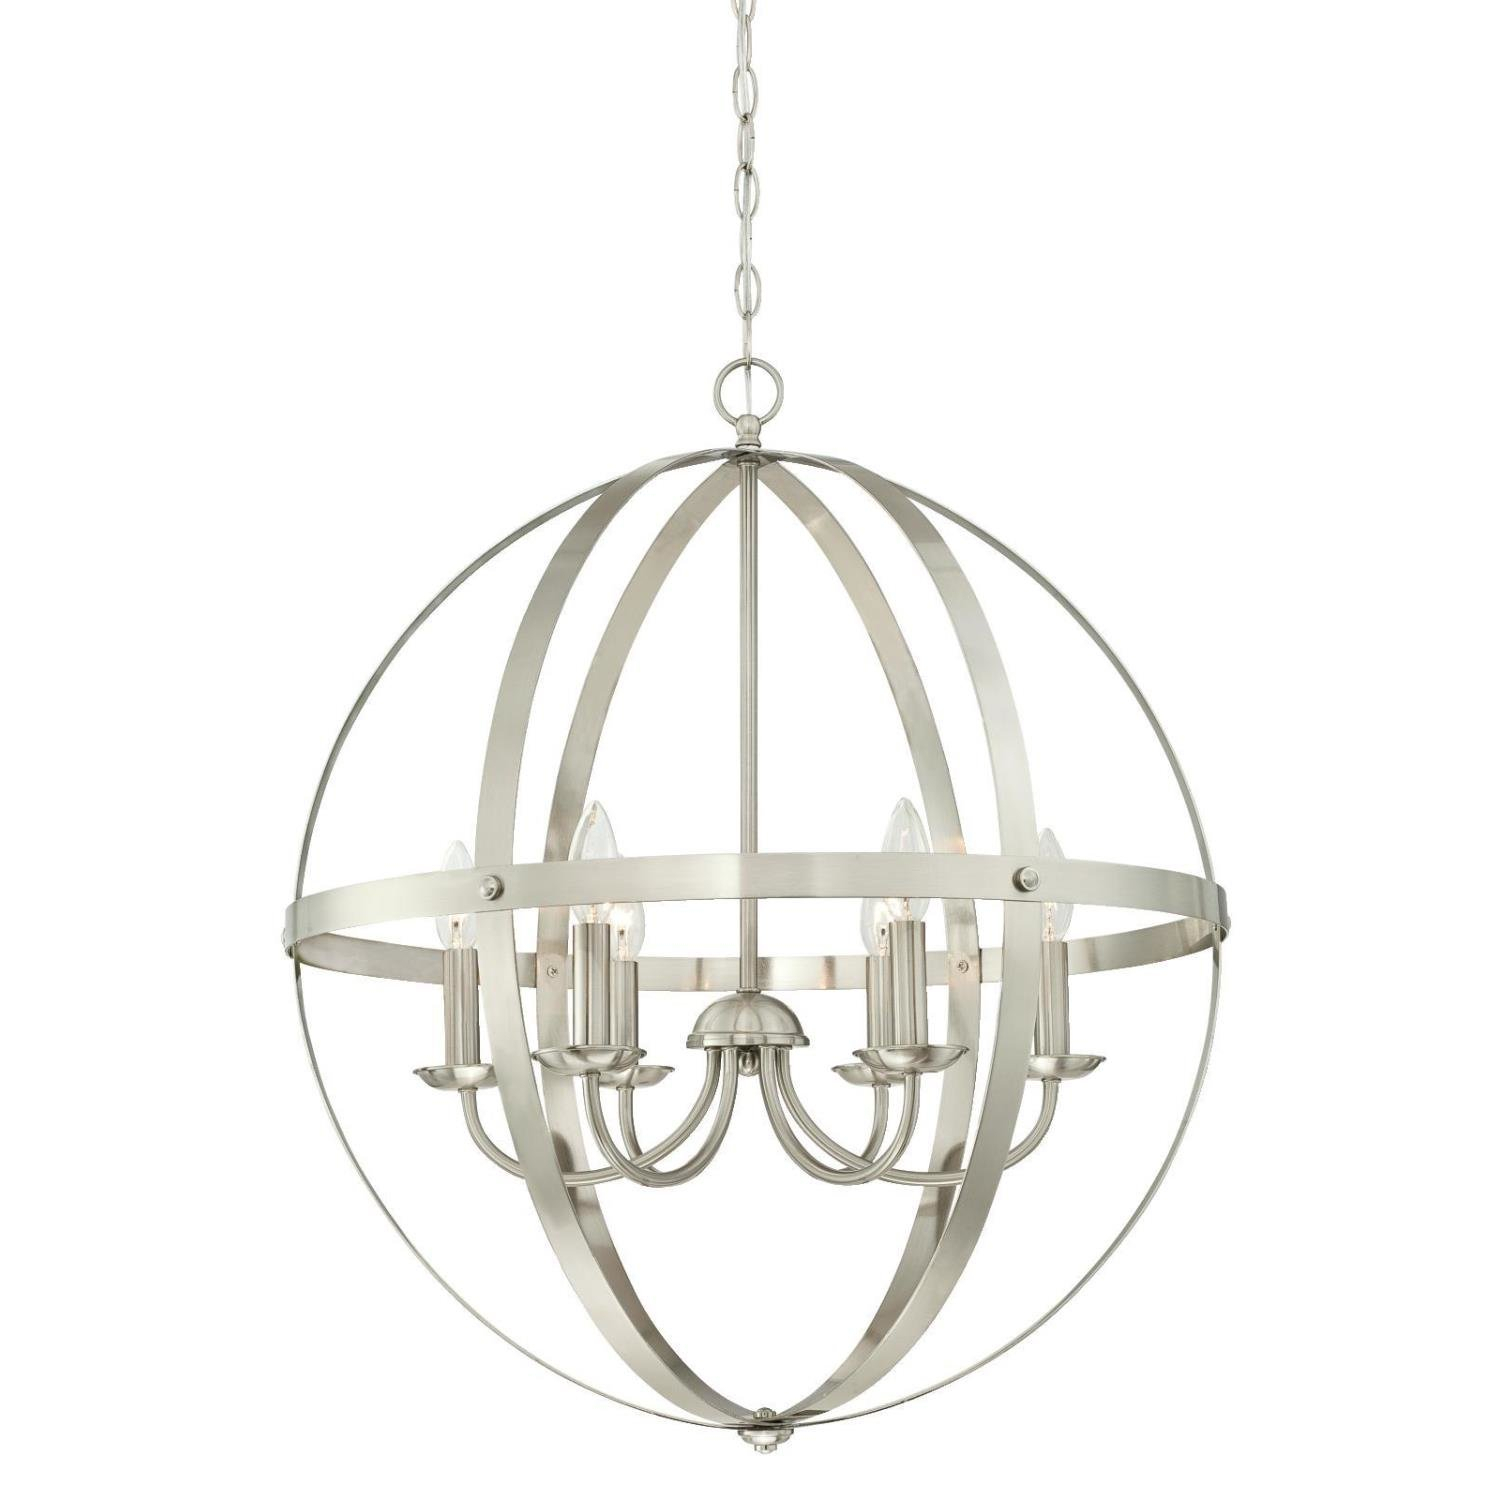 Joon 6-Light Globe Chandelier with regard to Joon 6-Light Globe Chandeliers (Image 15 of 30)